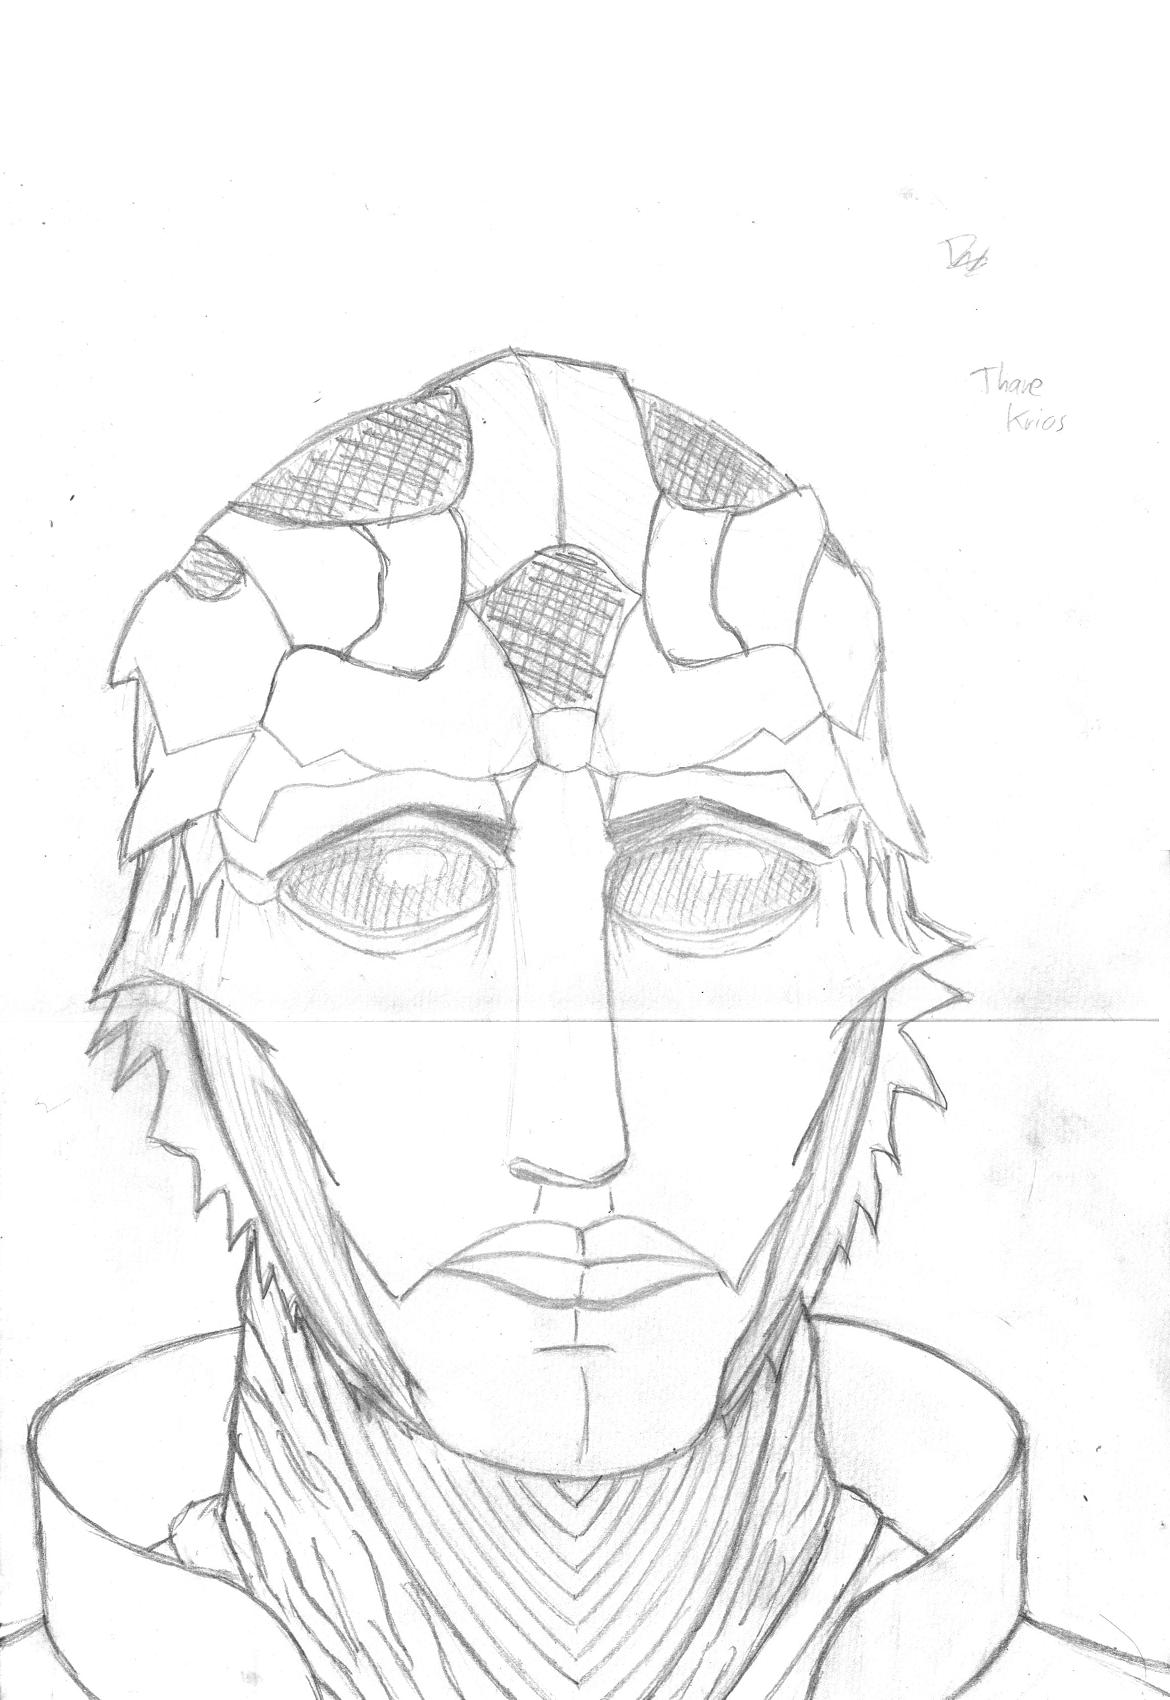 Thane Krios scanned